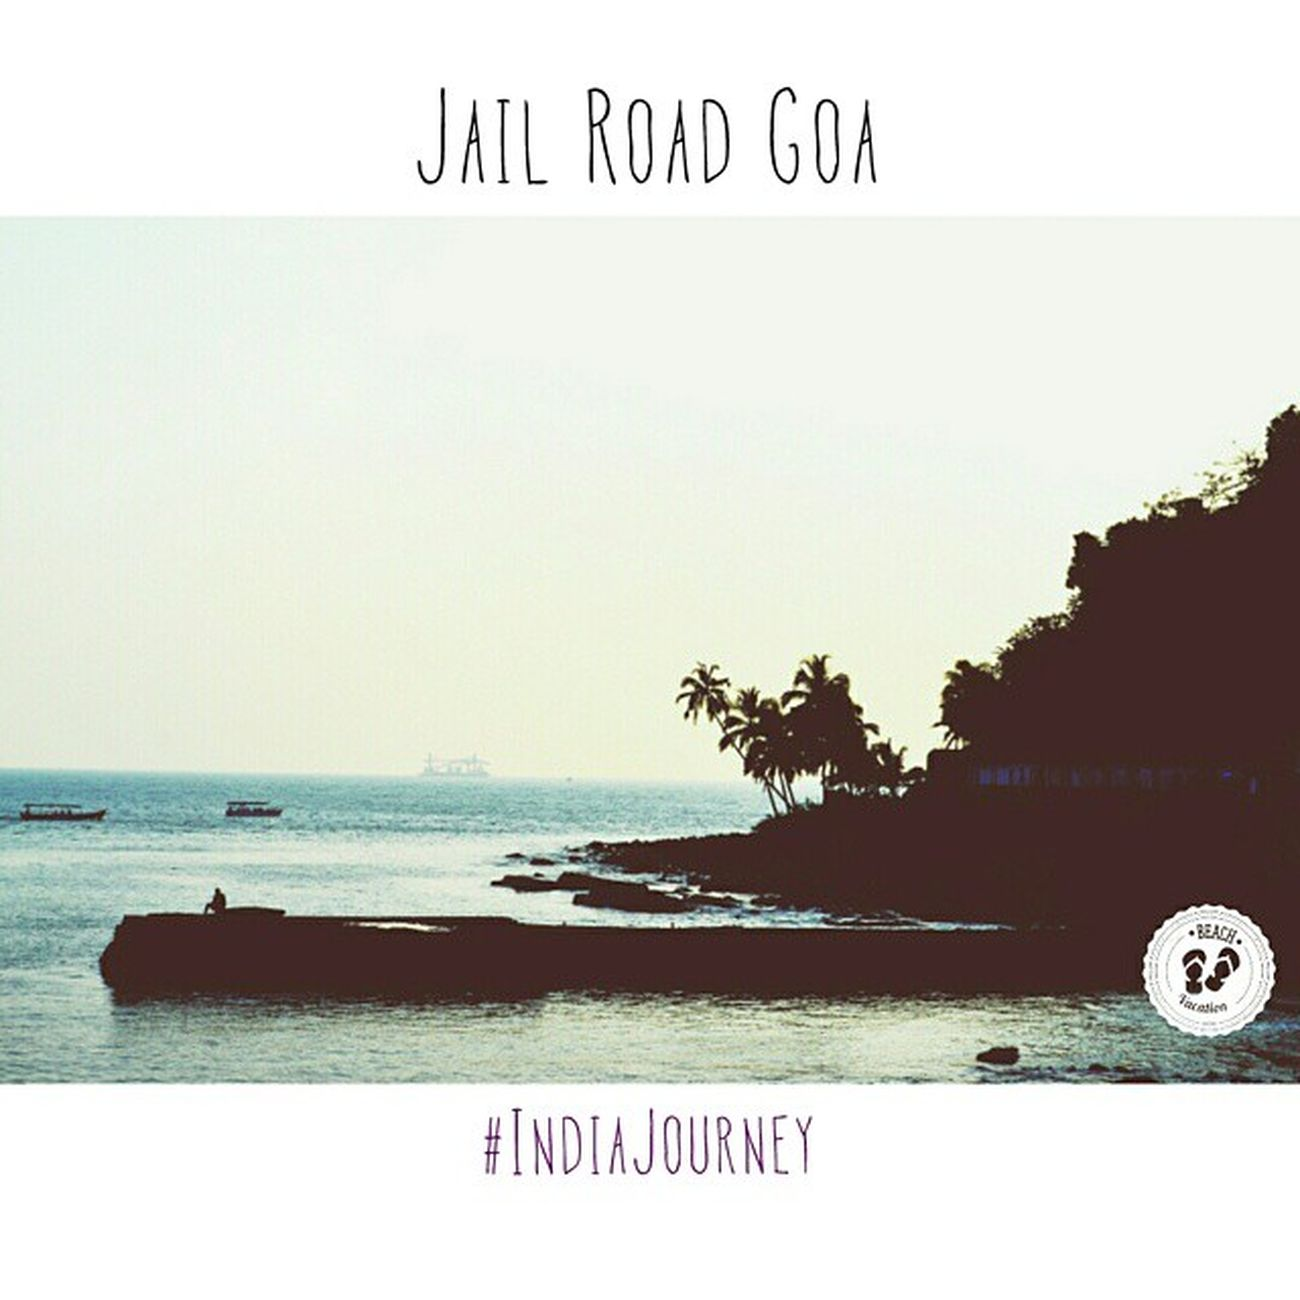 Jailroad Goa IndiaJourney IncredibleGoa Incredibleindia Indiapictures Indiaphotos Indiabeaches